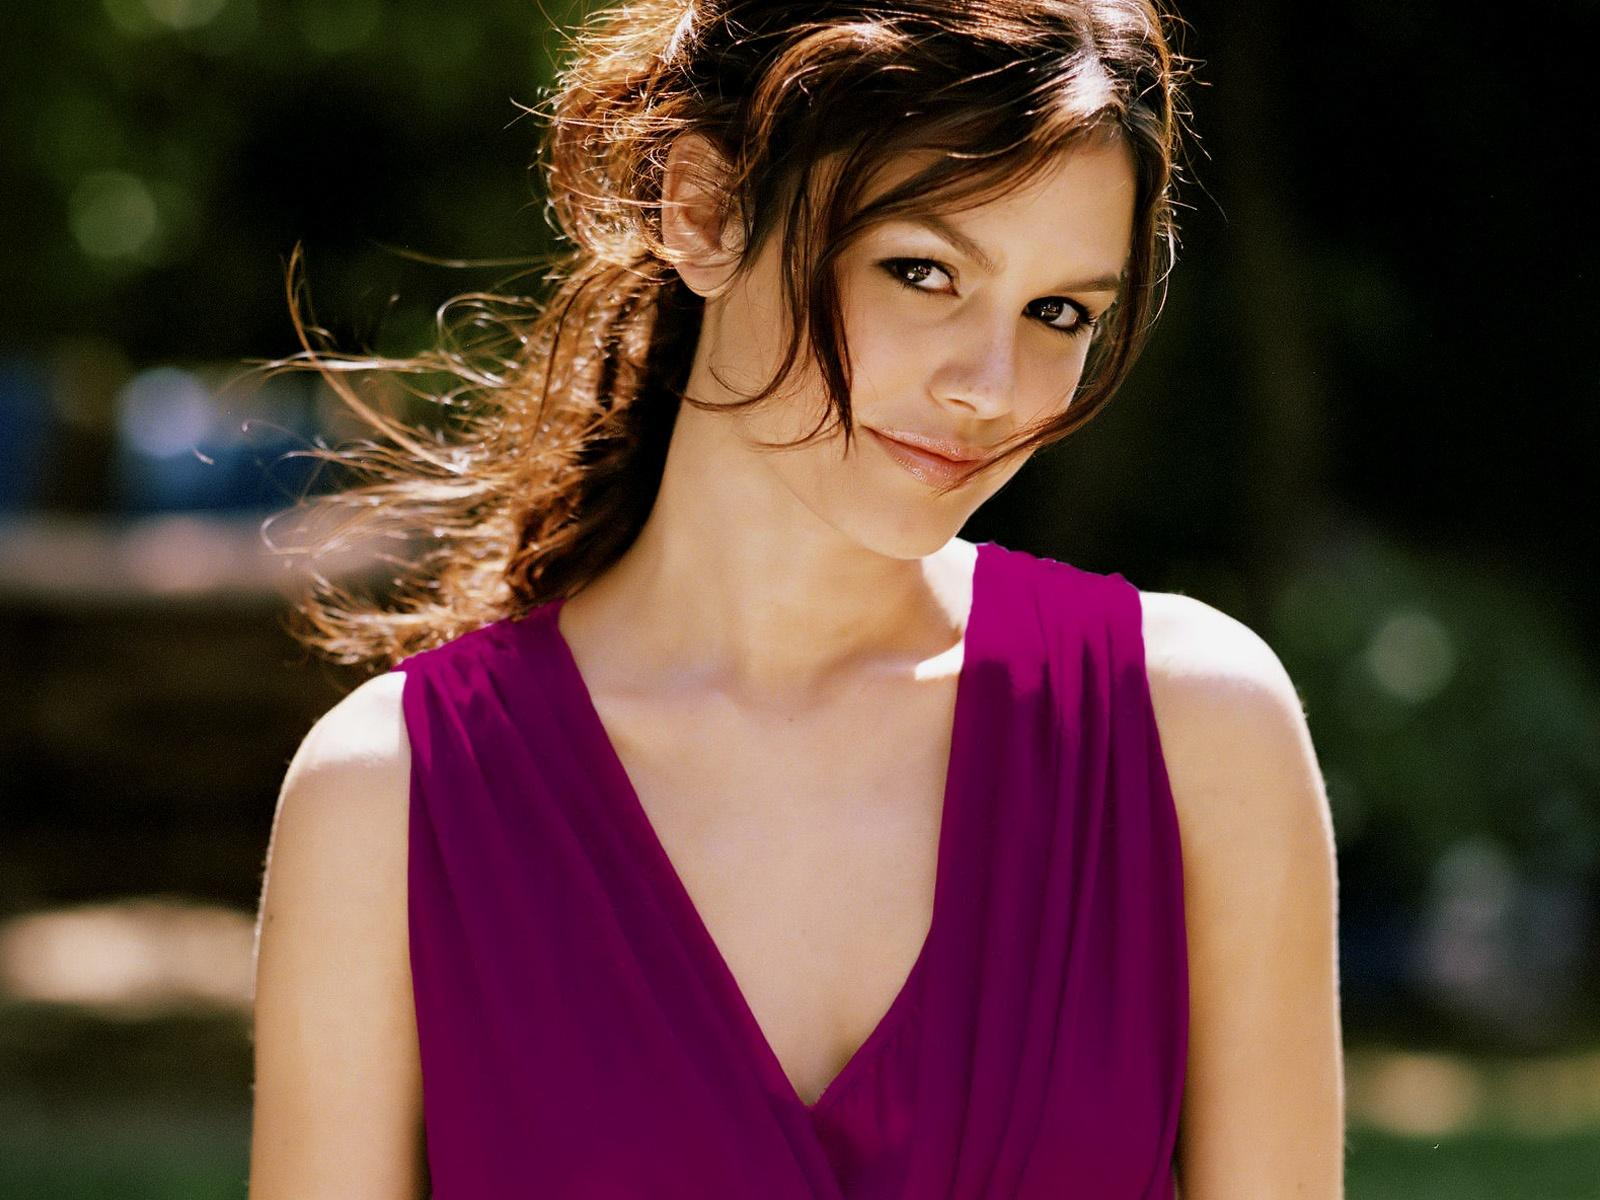 Rachel bilson pictures wallpapers hollywood actress - Celeb wallpapers ...